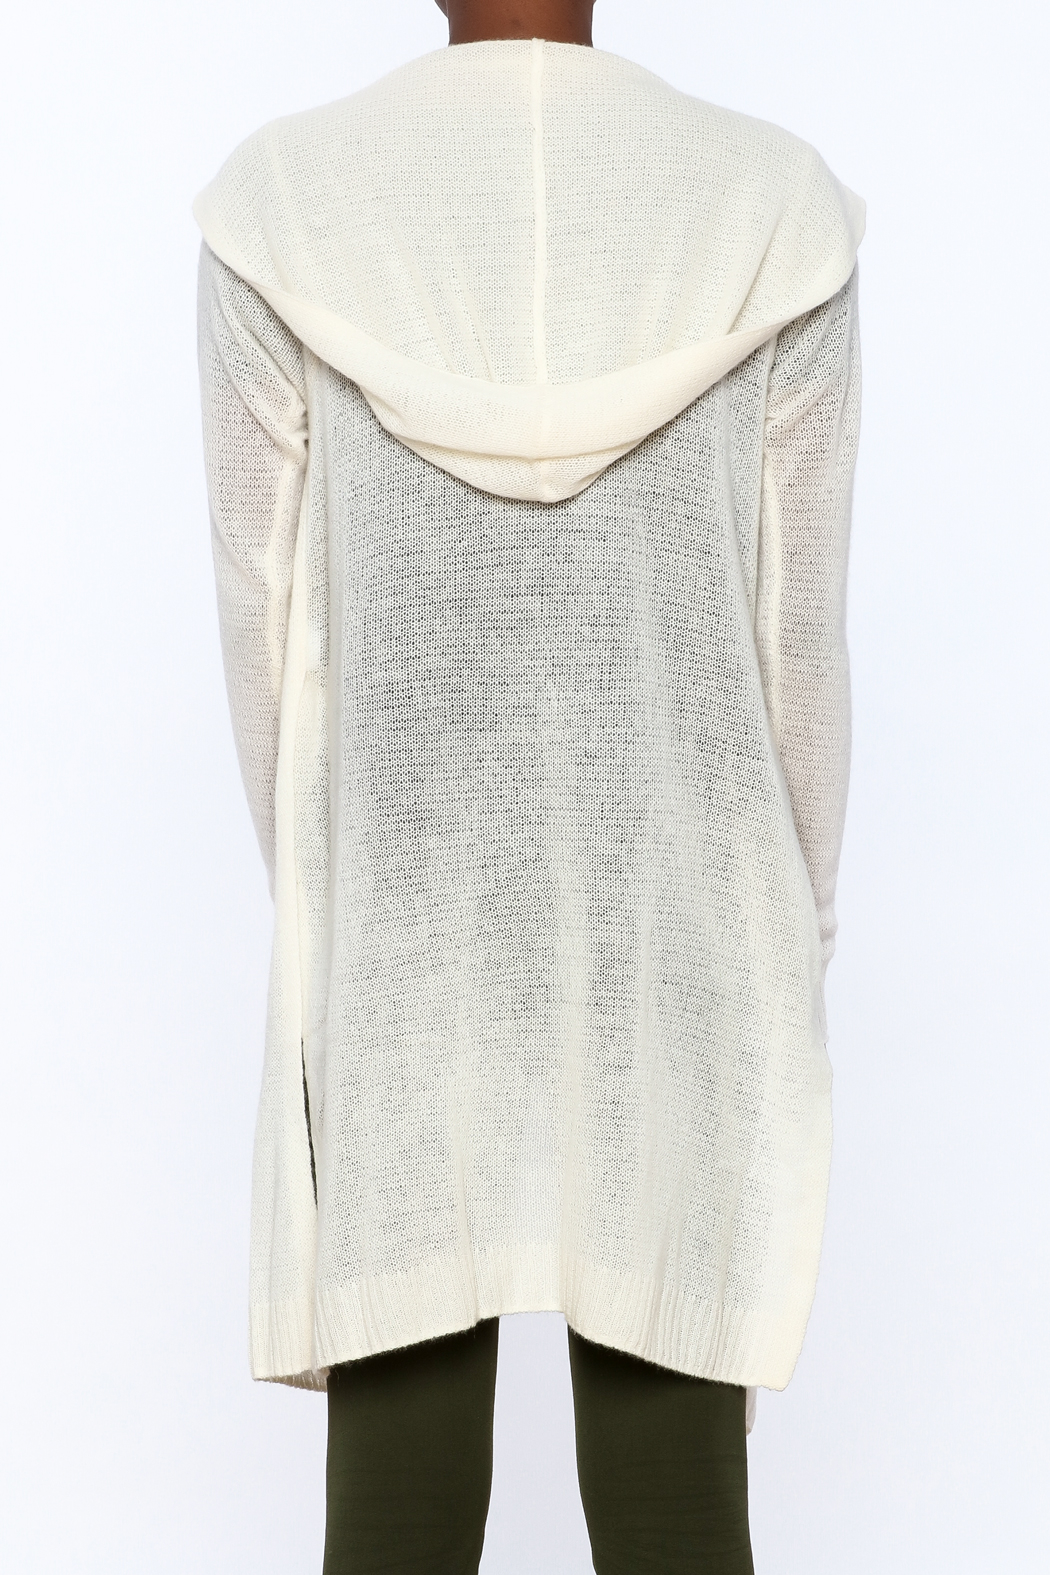 White + Warren White Cashmere Cardigan - Back Cropped Image